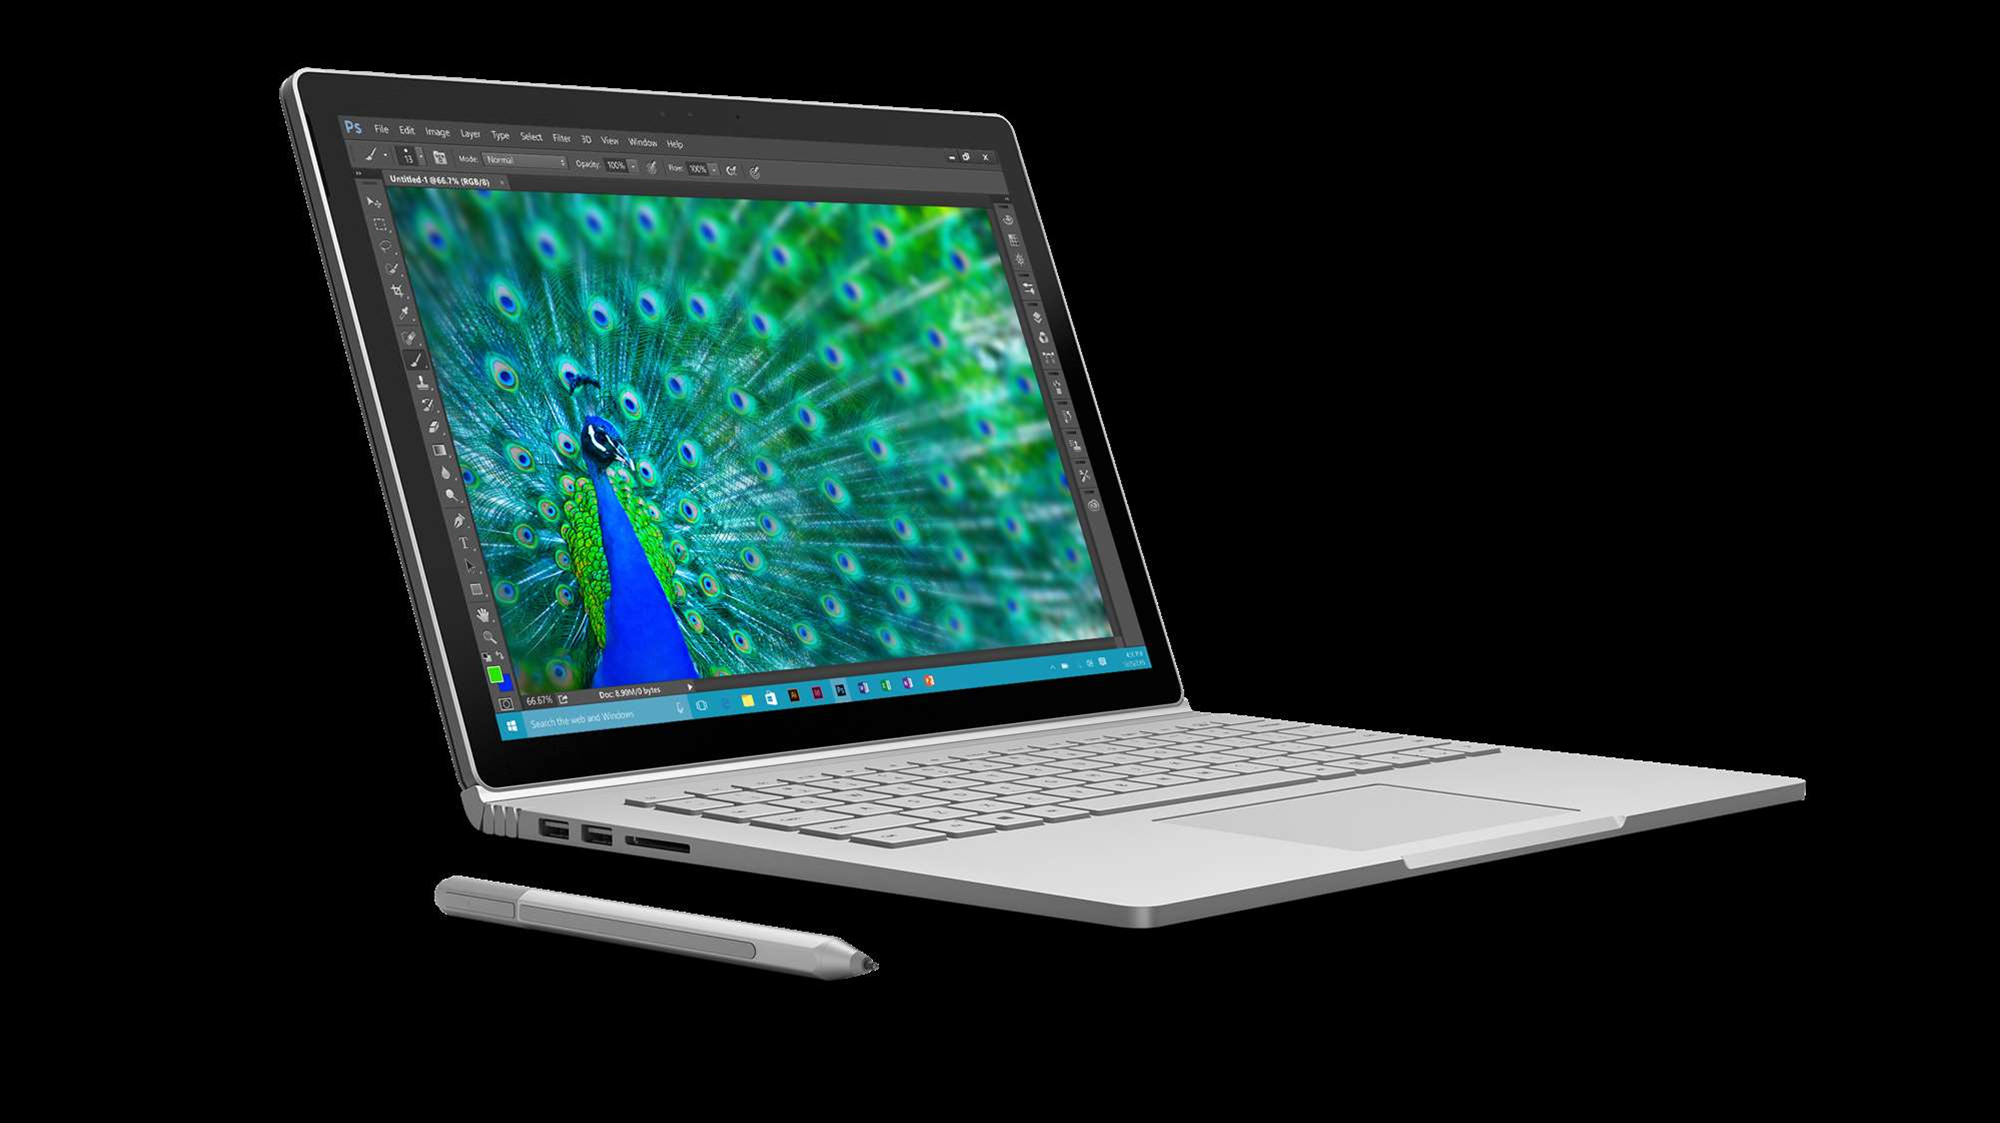 JB Hi-Fi, Harvey Norman get first dibs on Surface Book